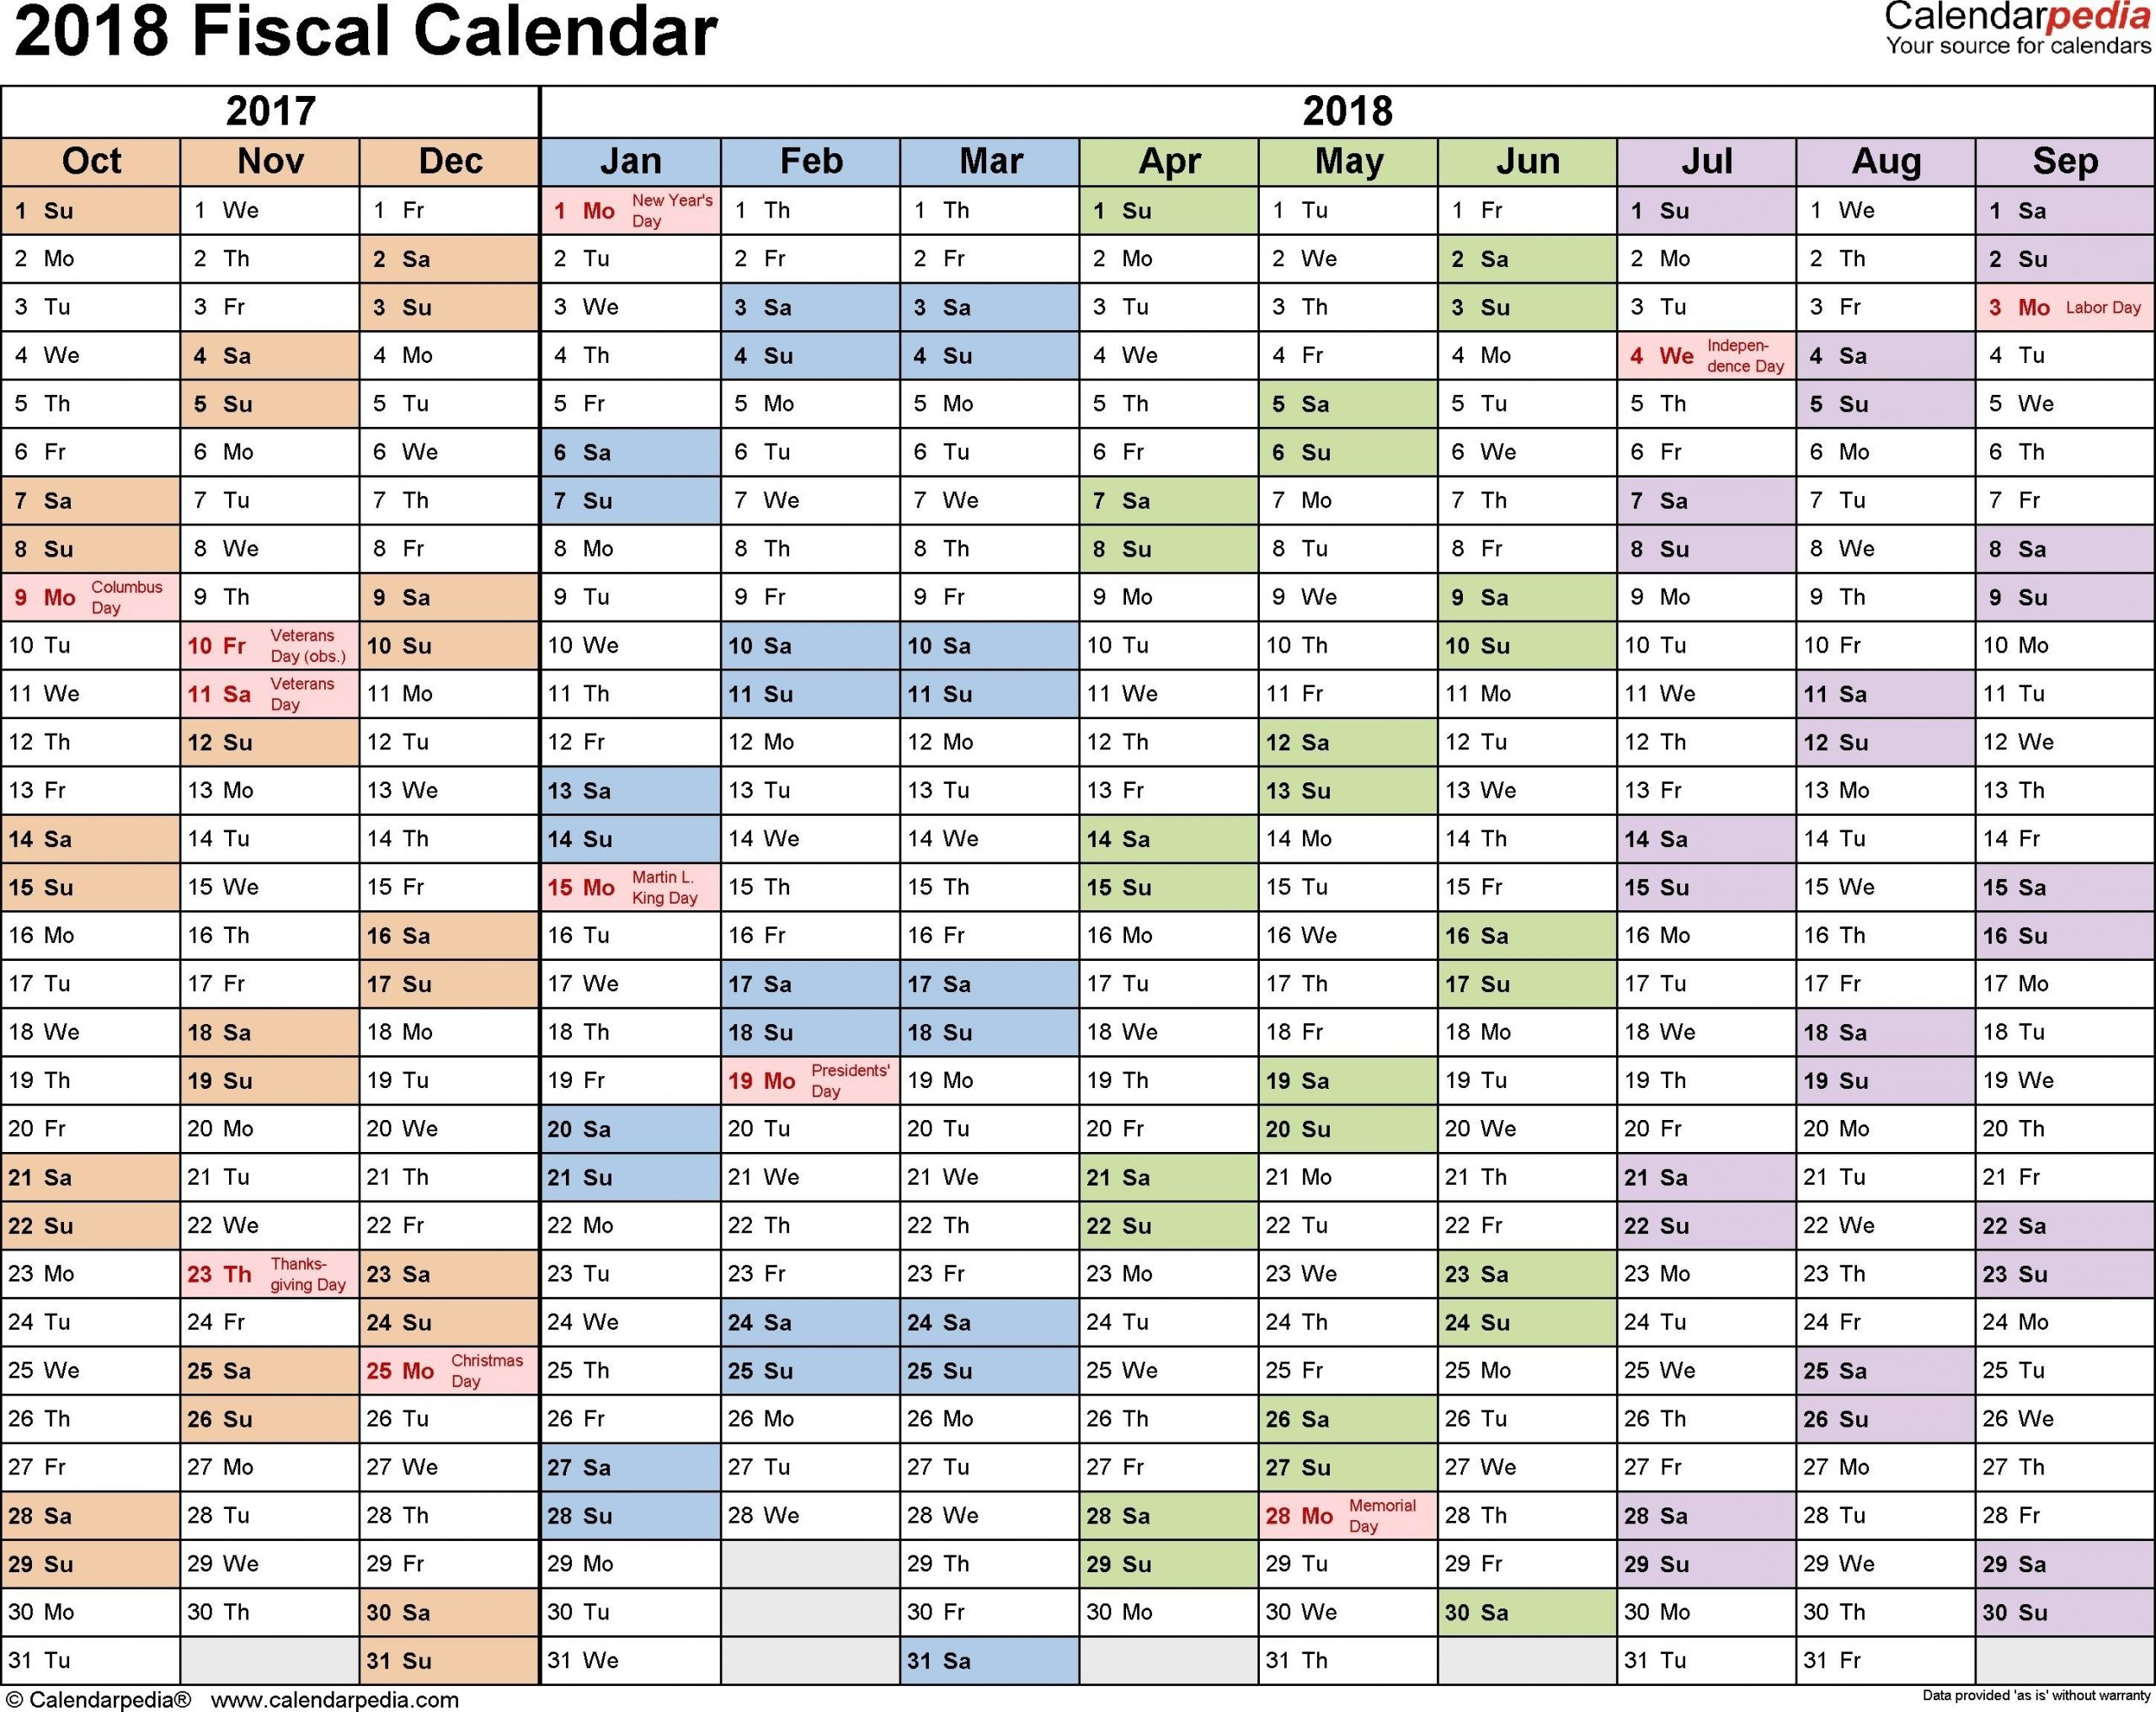 Calendar Listing Week Numbers In 2020 | Fiscal Calendar  Depo Provera Injection Schedule Chart 2021